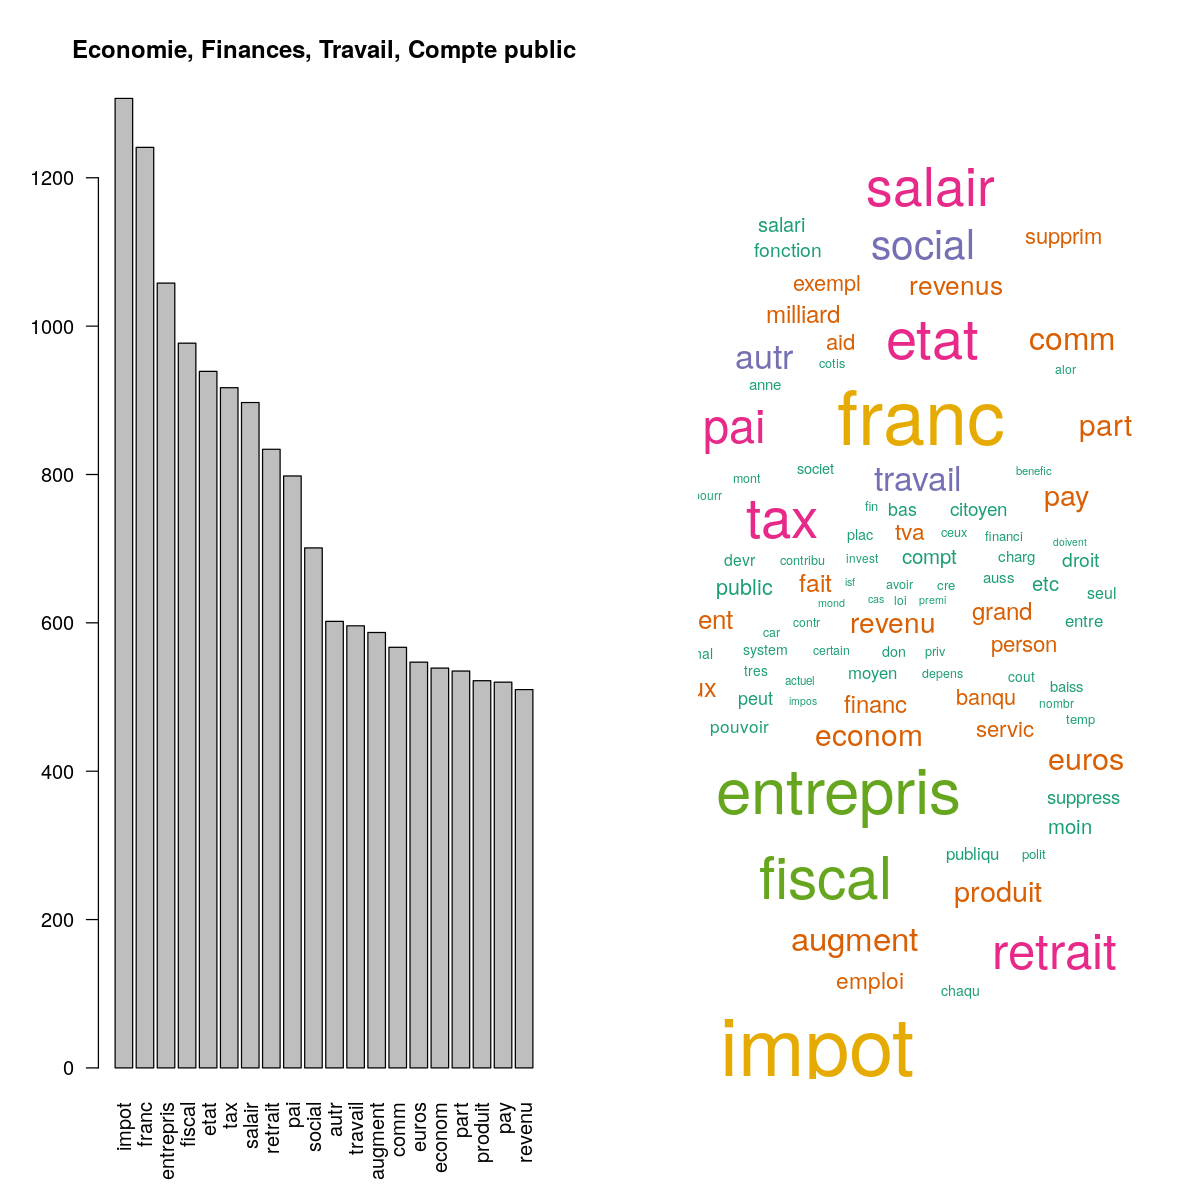 Exemple of a stemmed word cloud and frequency histogram.